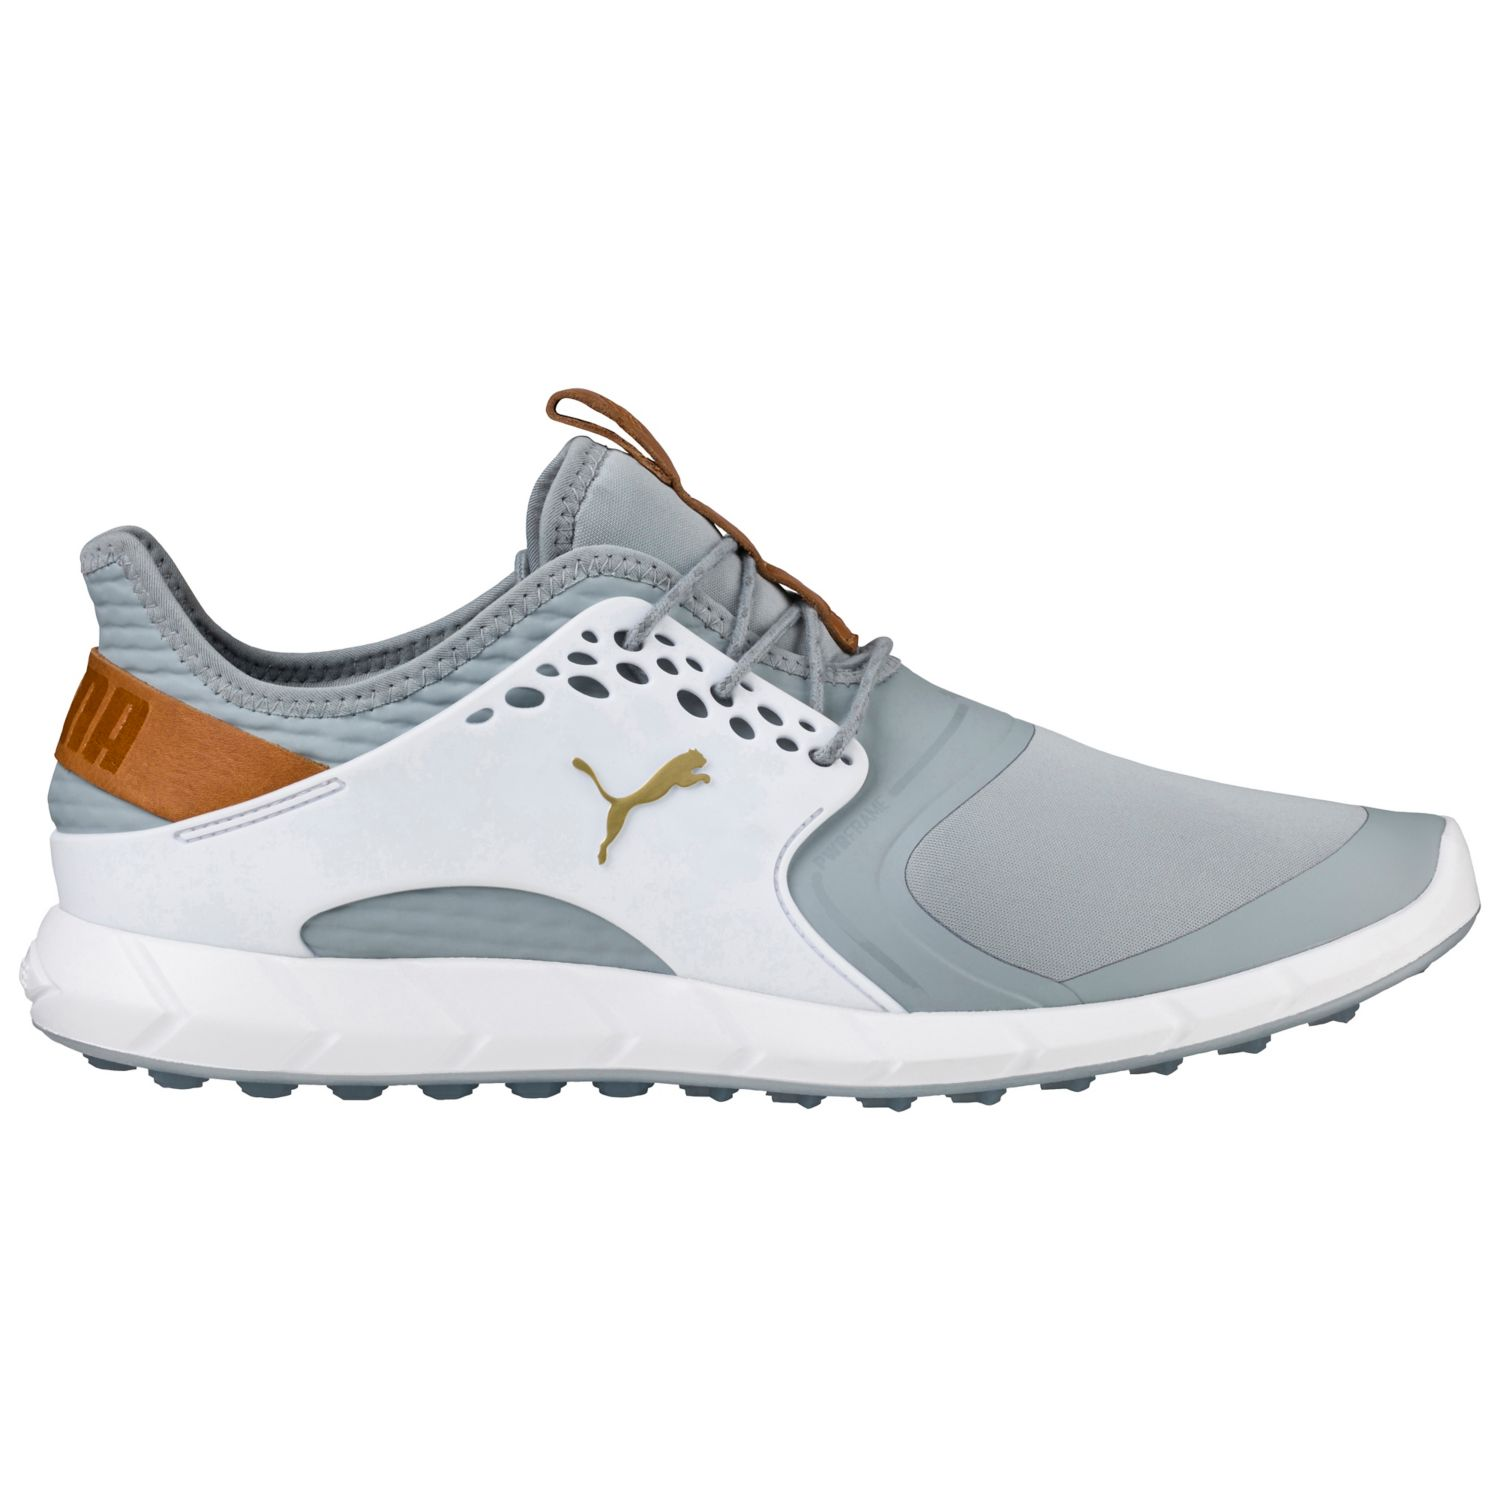 Puma Men's Ignite Pwrsport Golf Shoe by Puma